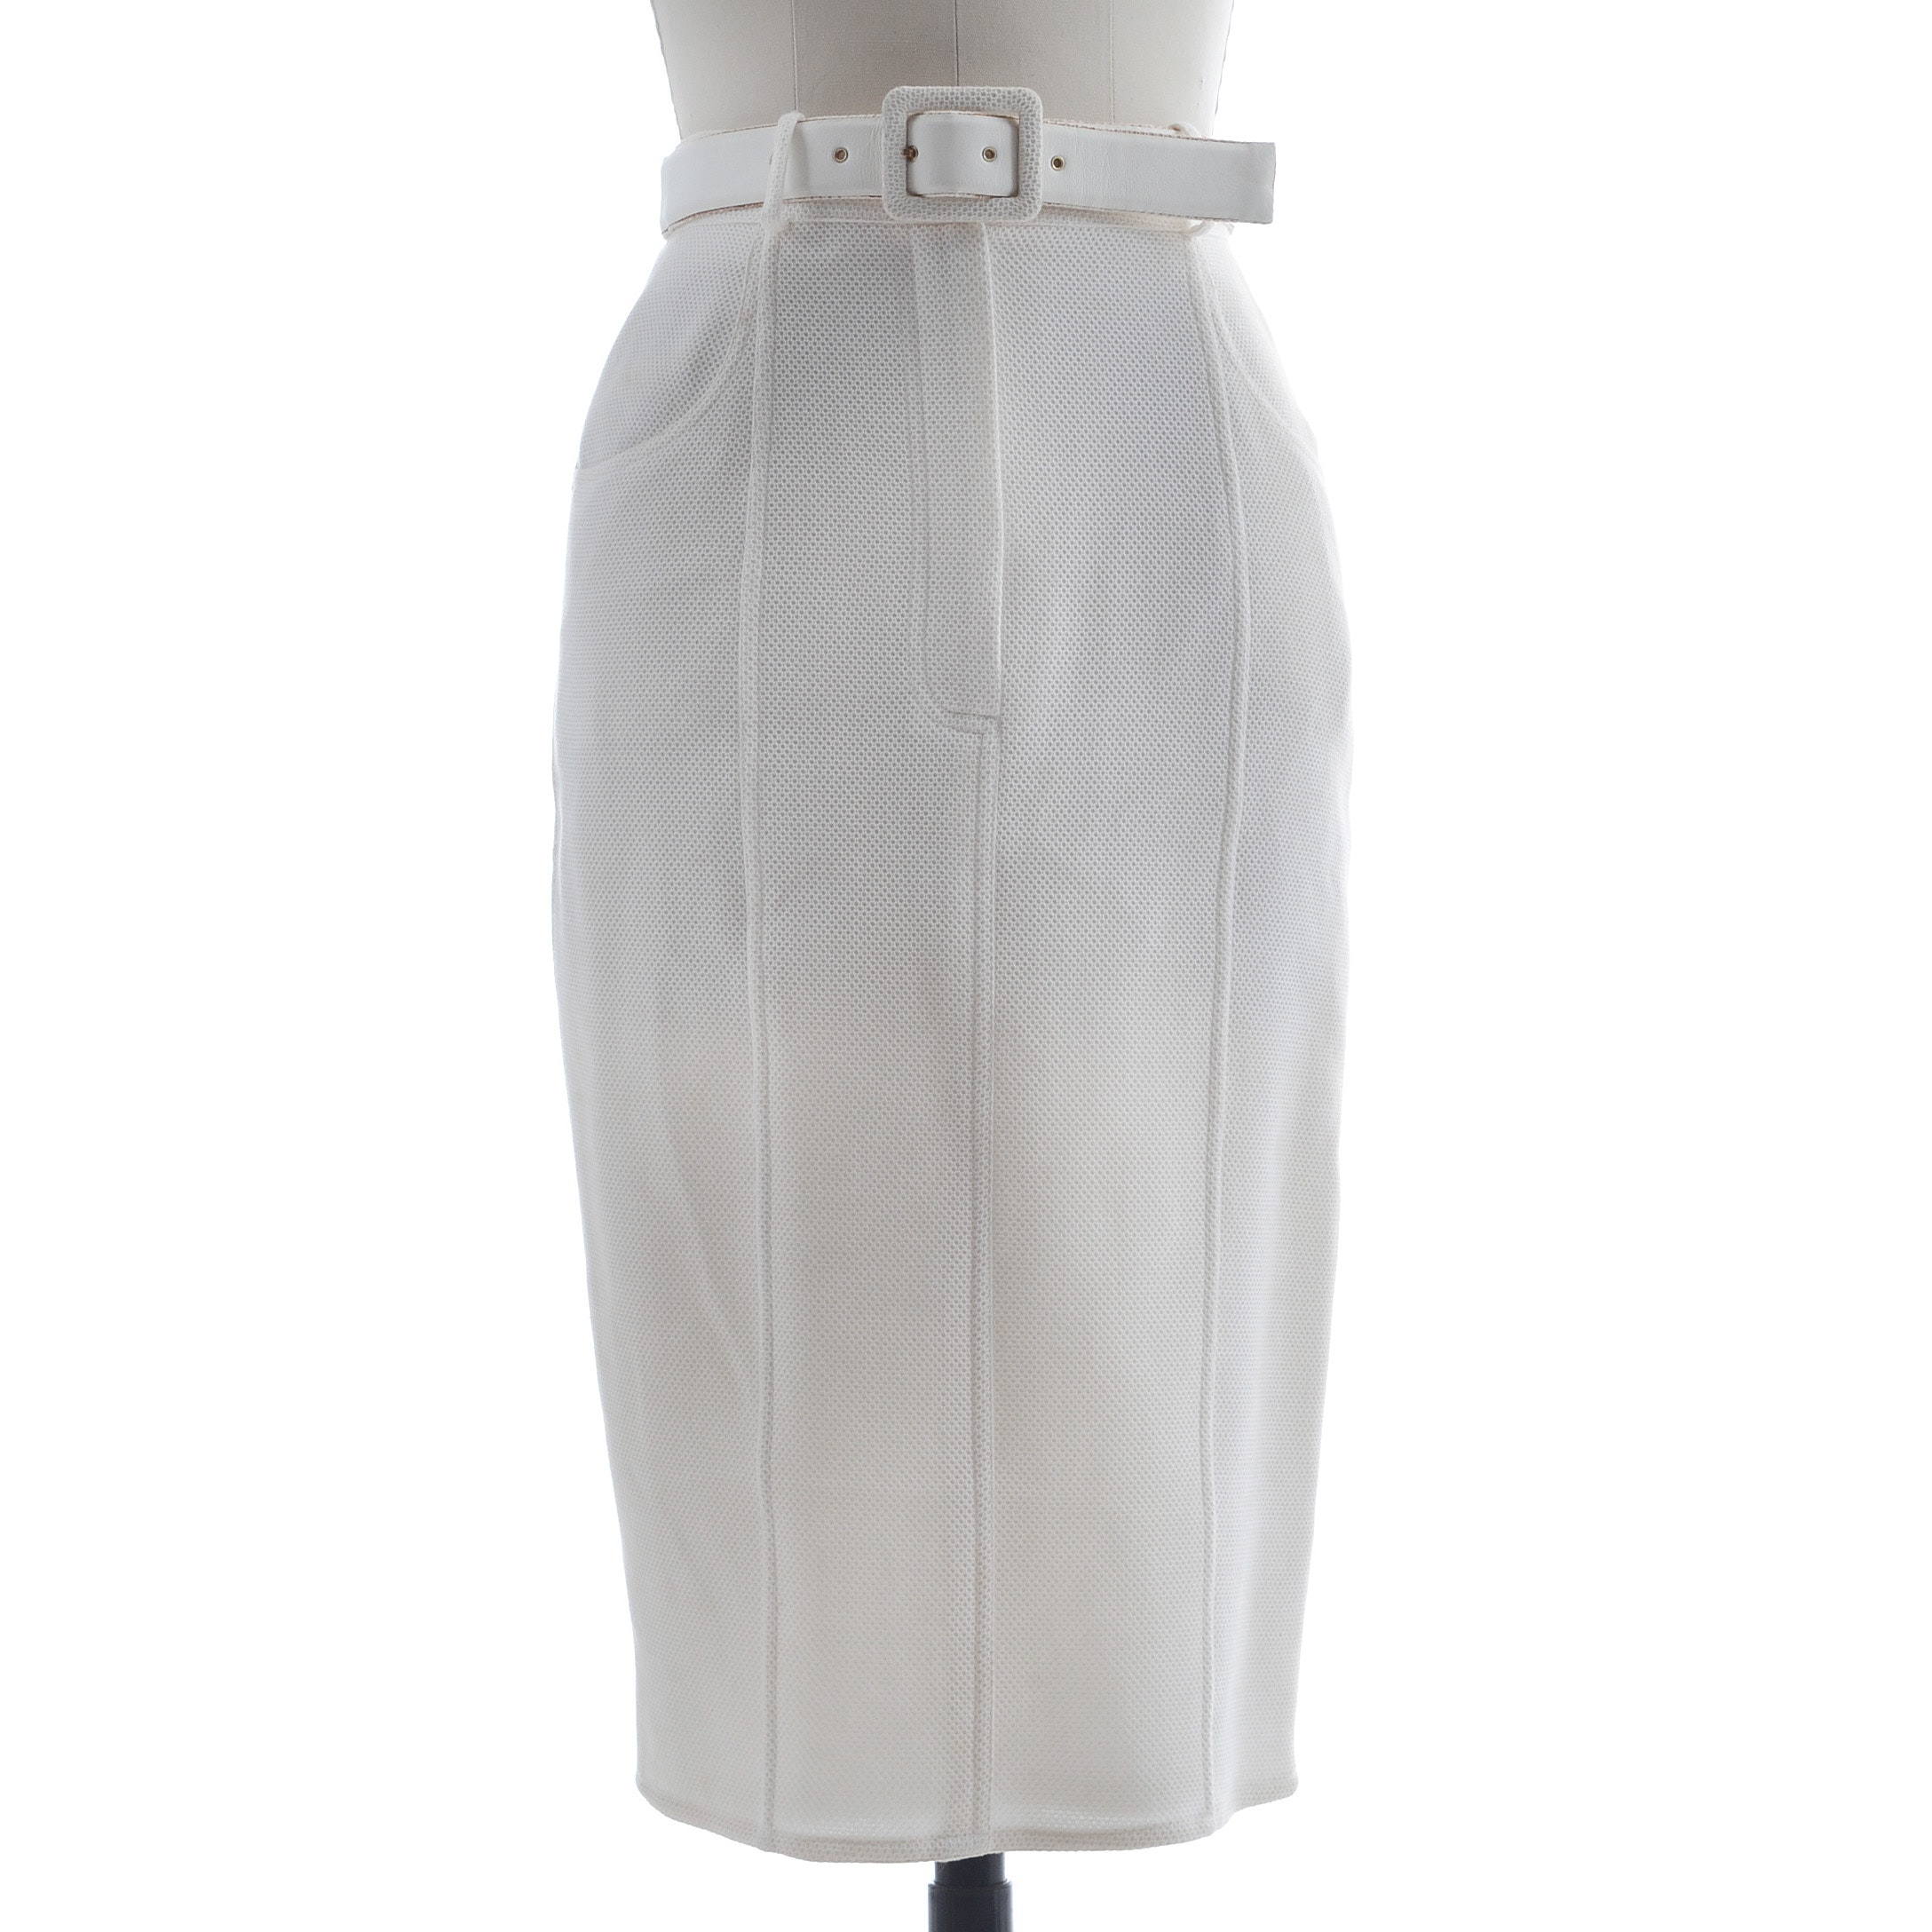 Chanel Pencil Skirt In Blanc Textured Cotton with Matching Belt